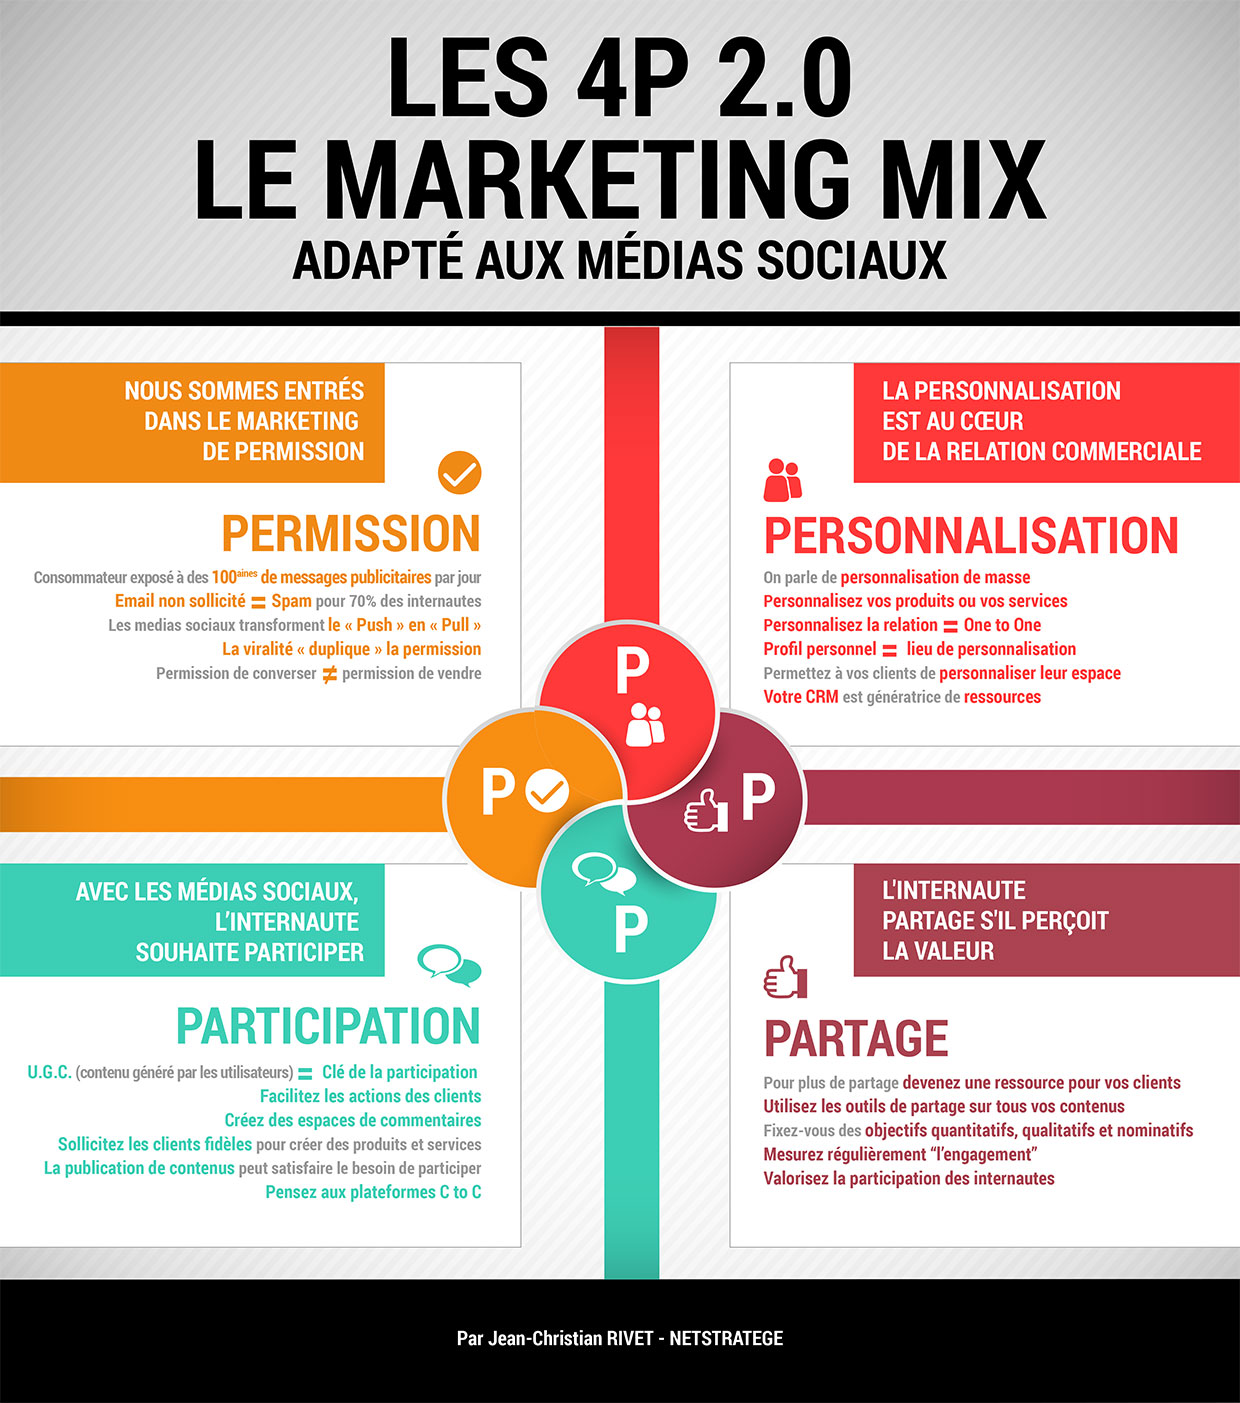 Marketing Mix - Medias Sociaux